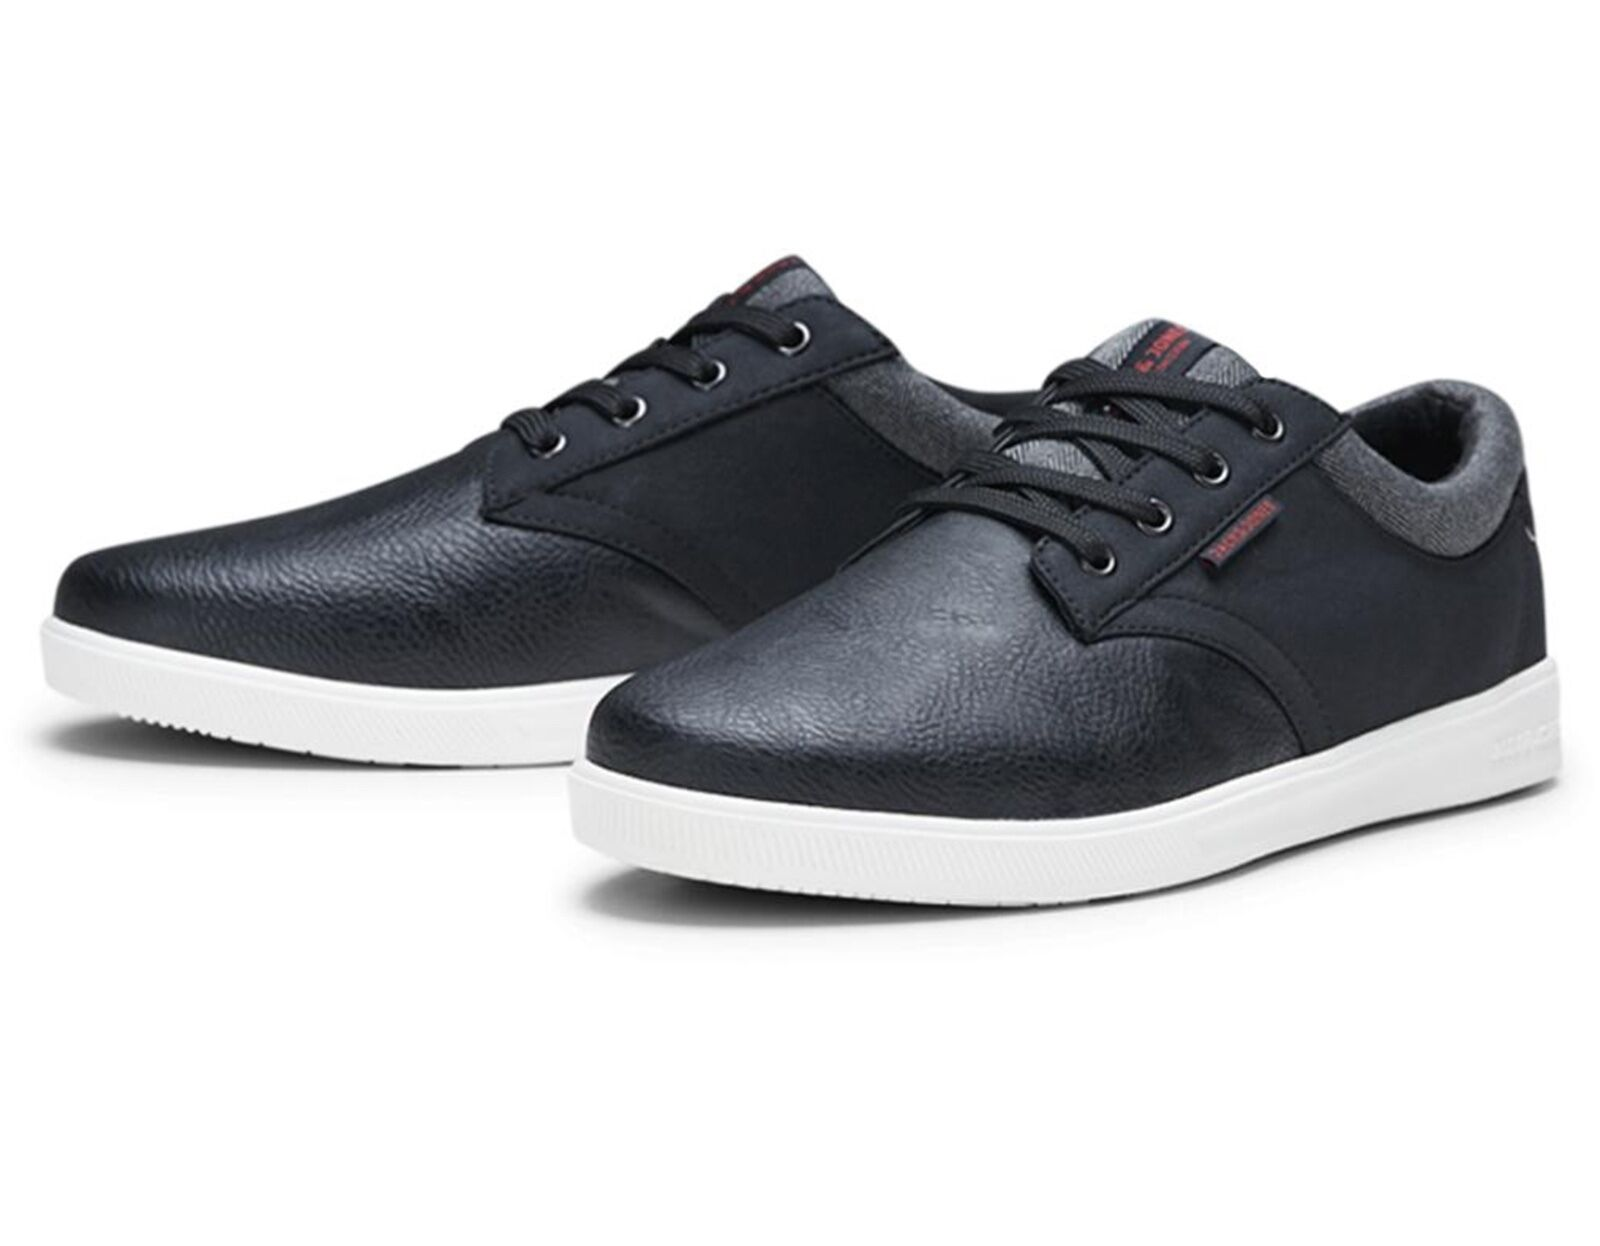 JACK & JONES  Uomo Gaston Synthetic Leder Schuhes Trainers Sneakers Anthracite